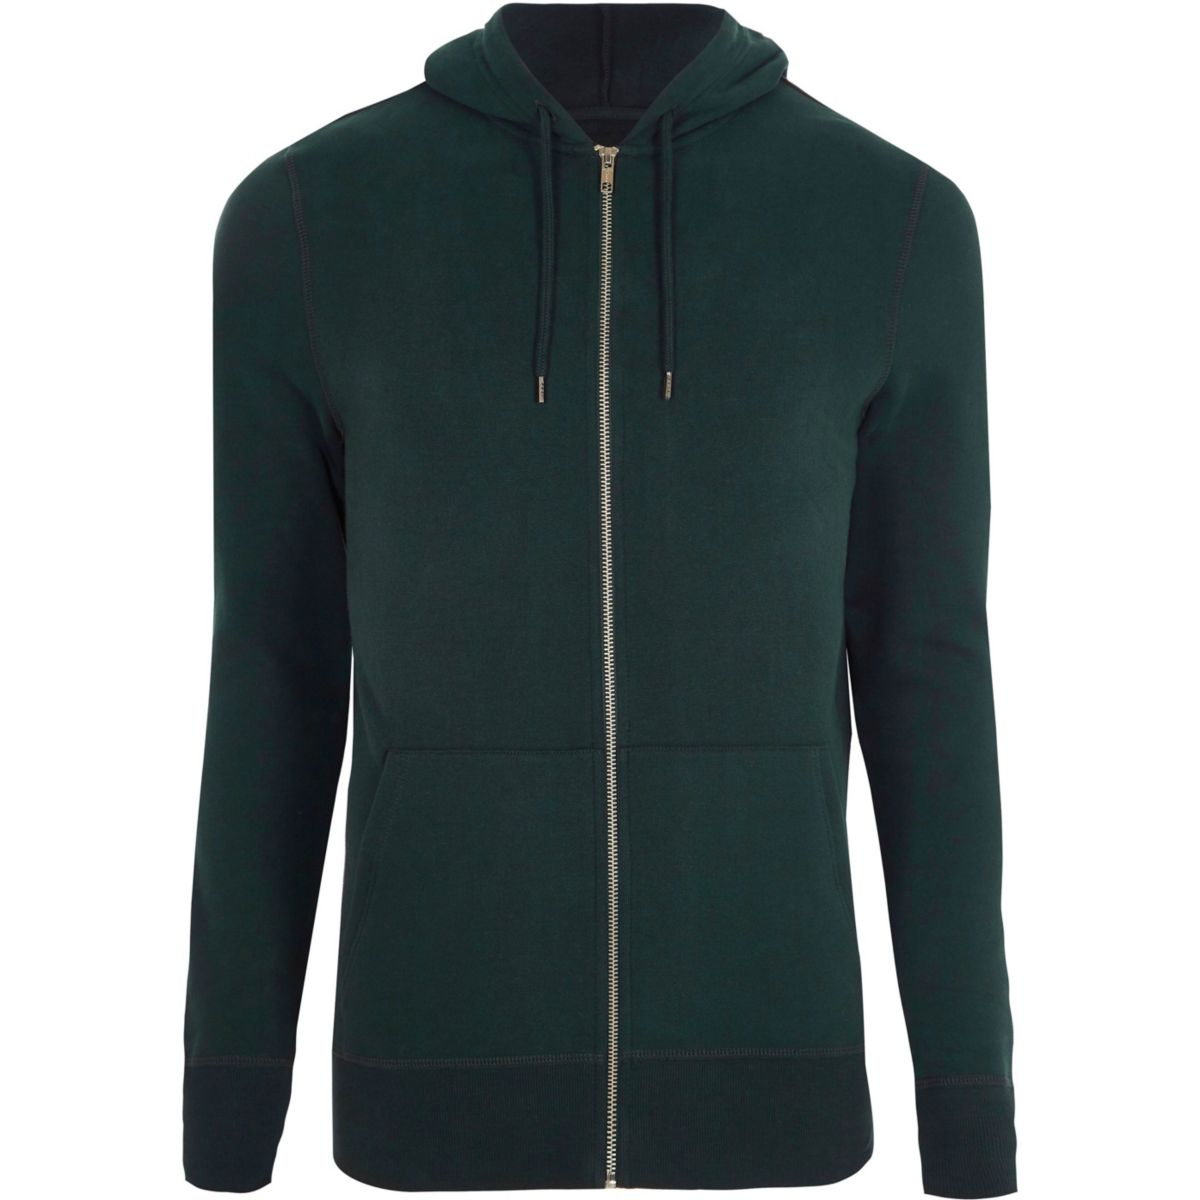 Forest green muscle fit zip up hoodie